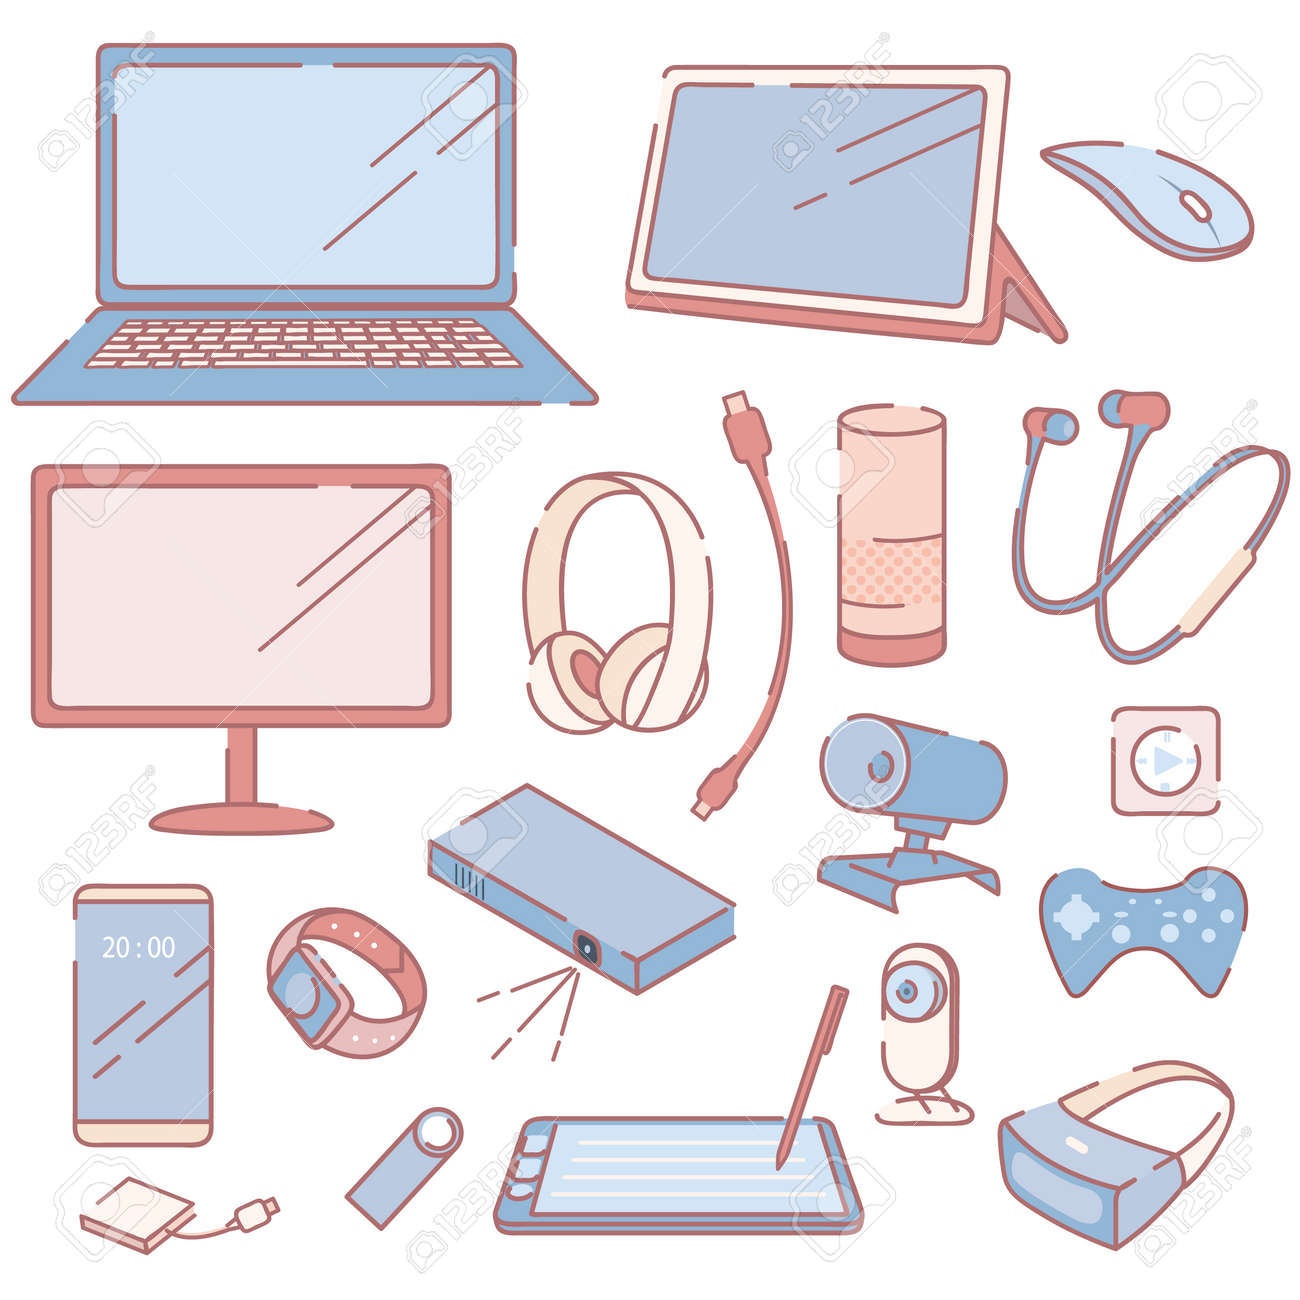 Modern Electronic Devices and Accessories Set - 103896803